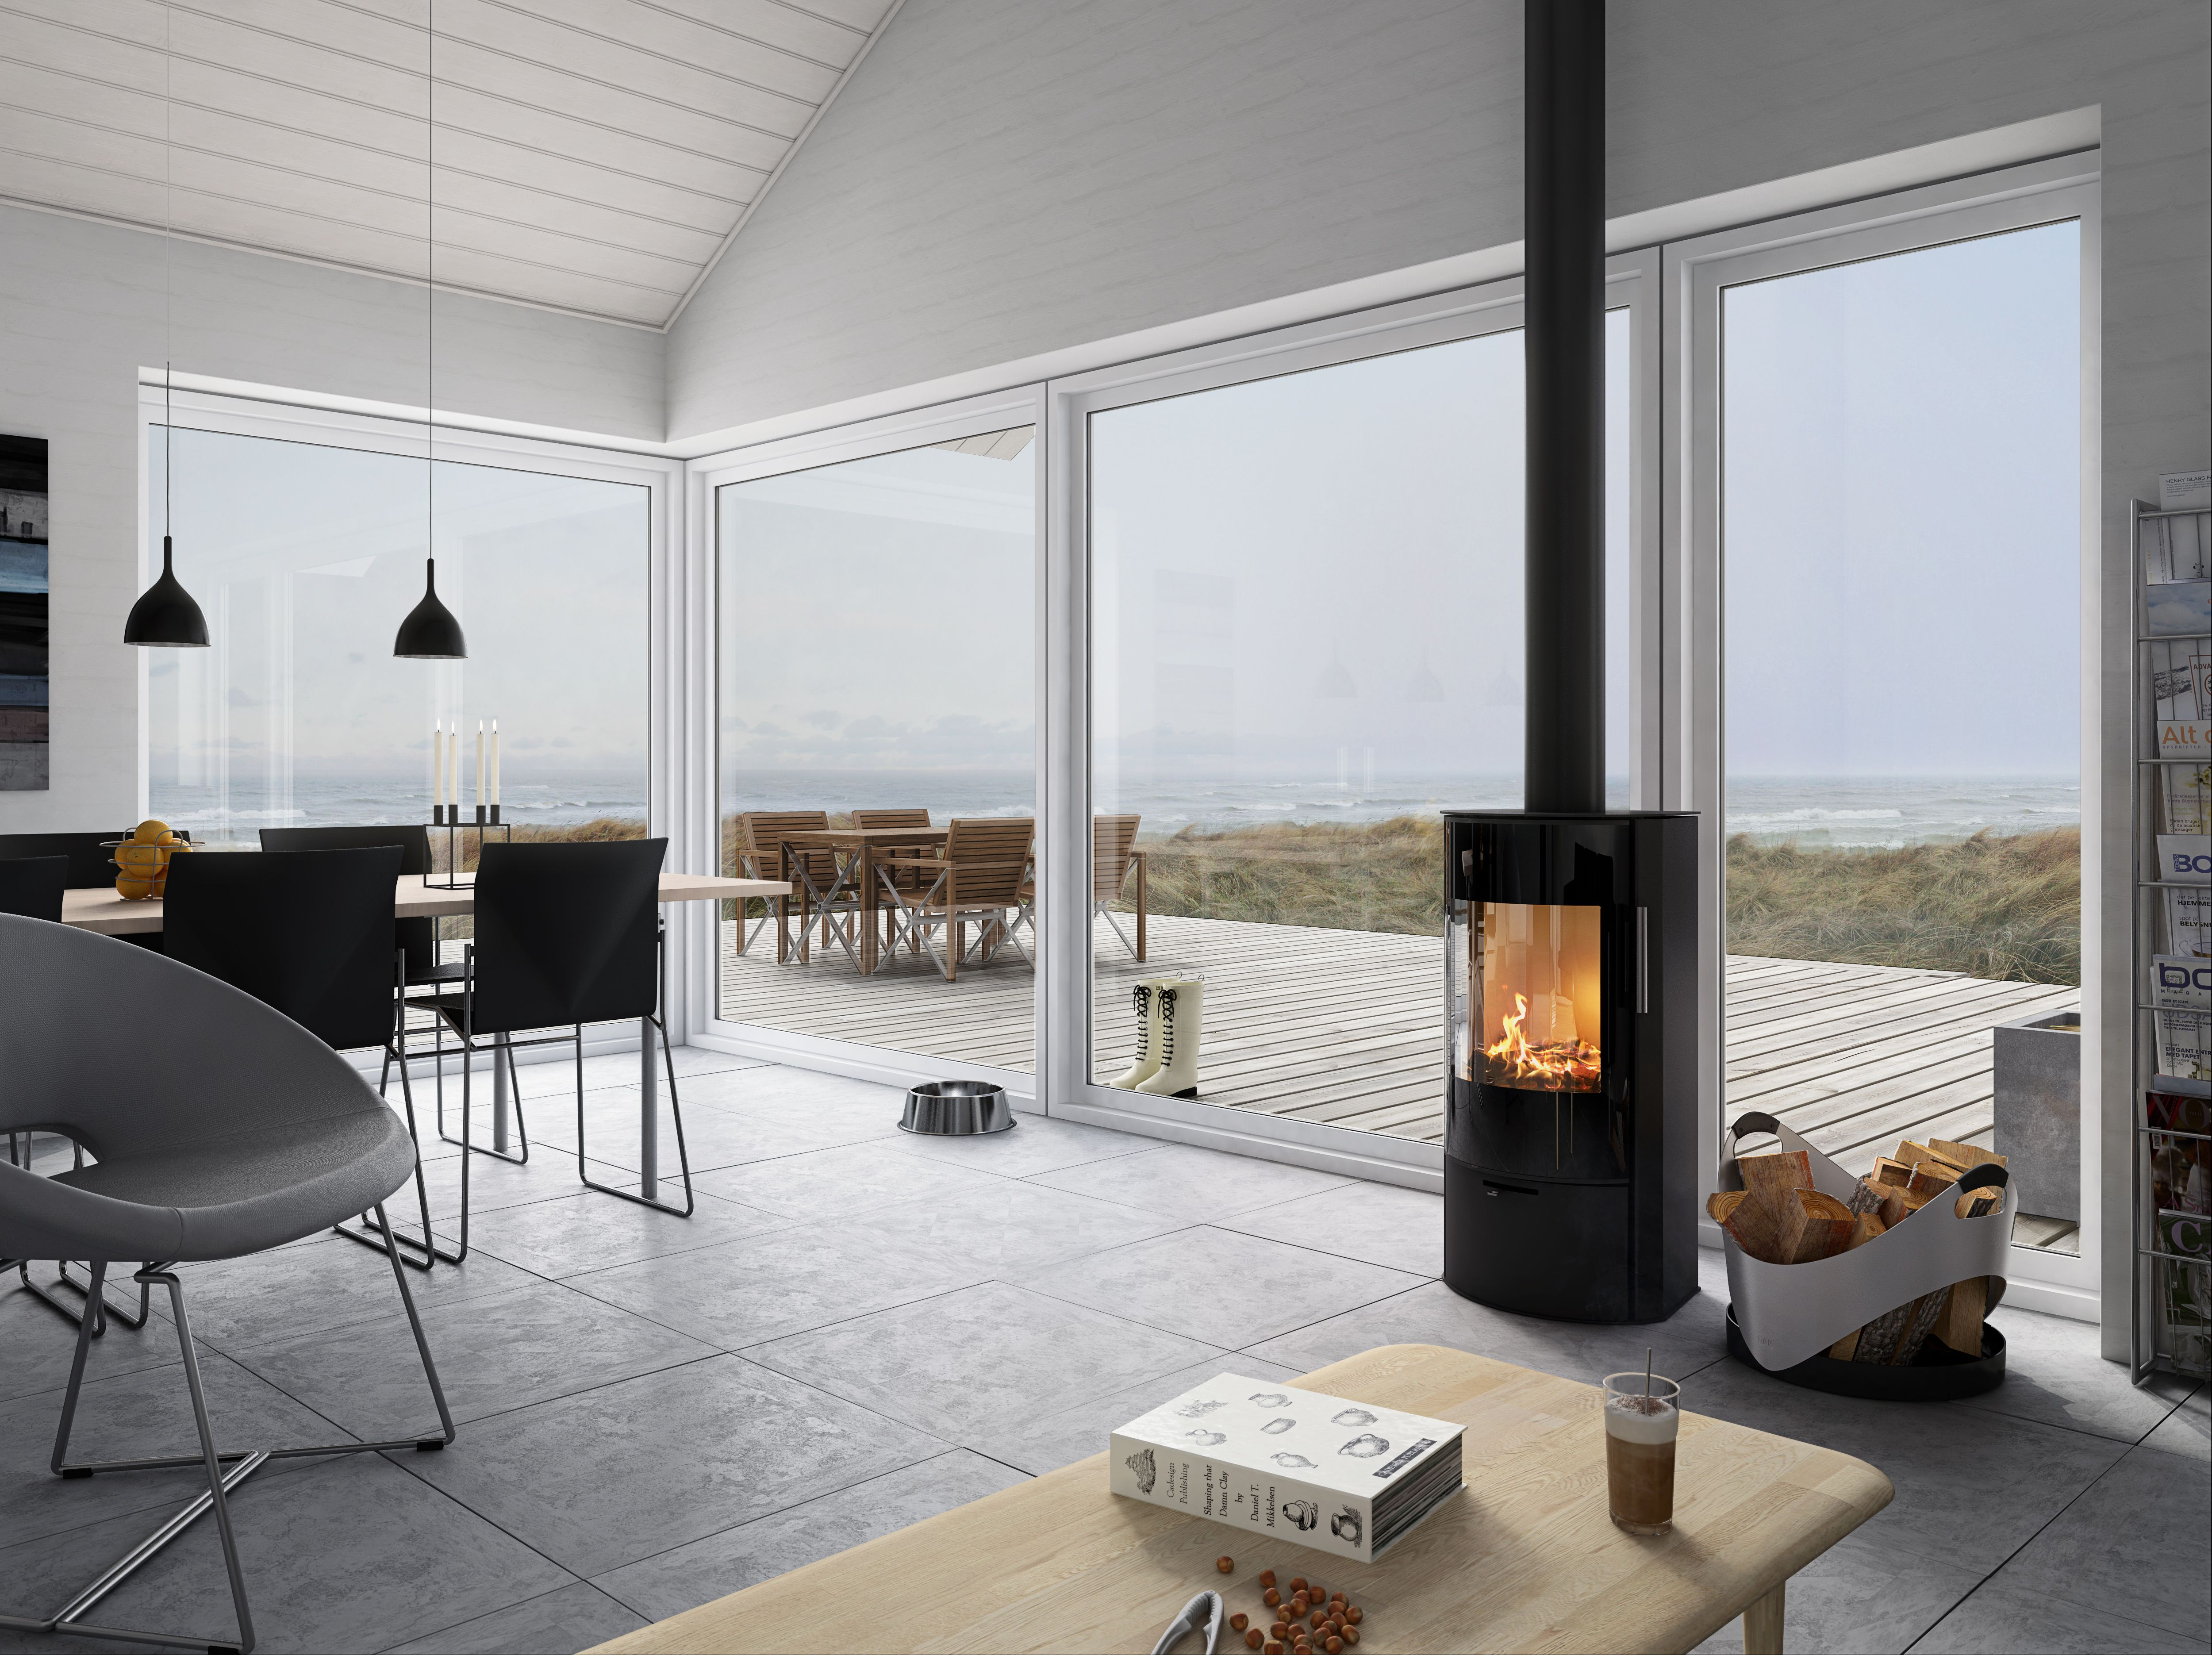 So If We Have Tile Need No Glass Below Stove Fire Place From Rais Architecture Insides